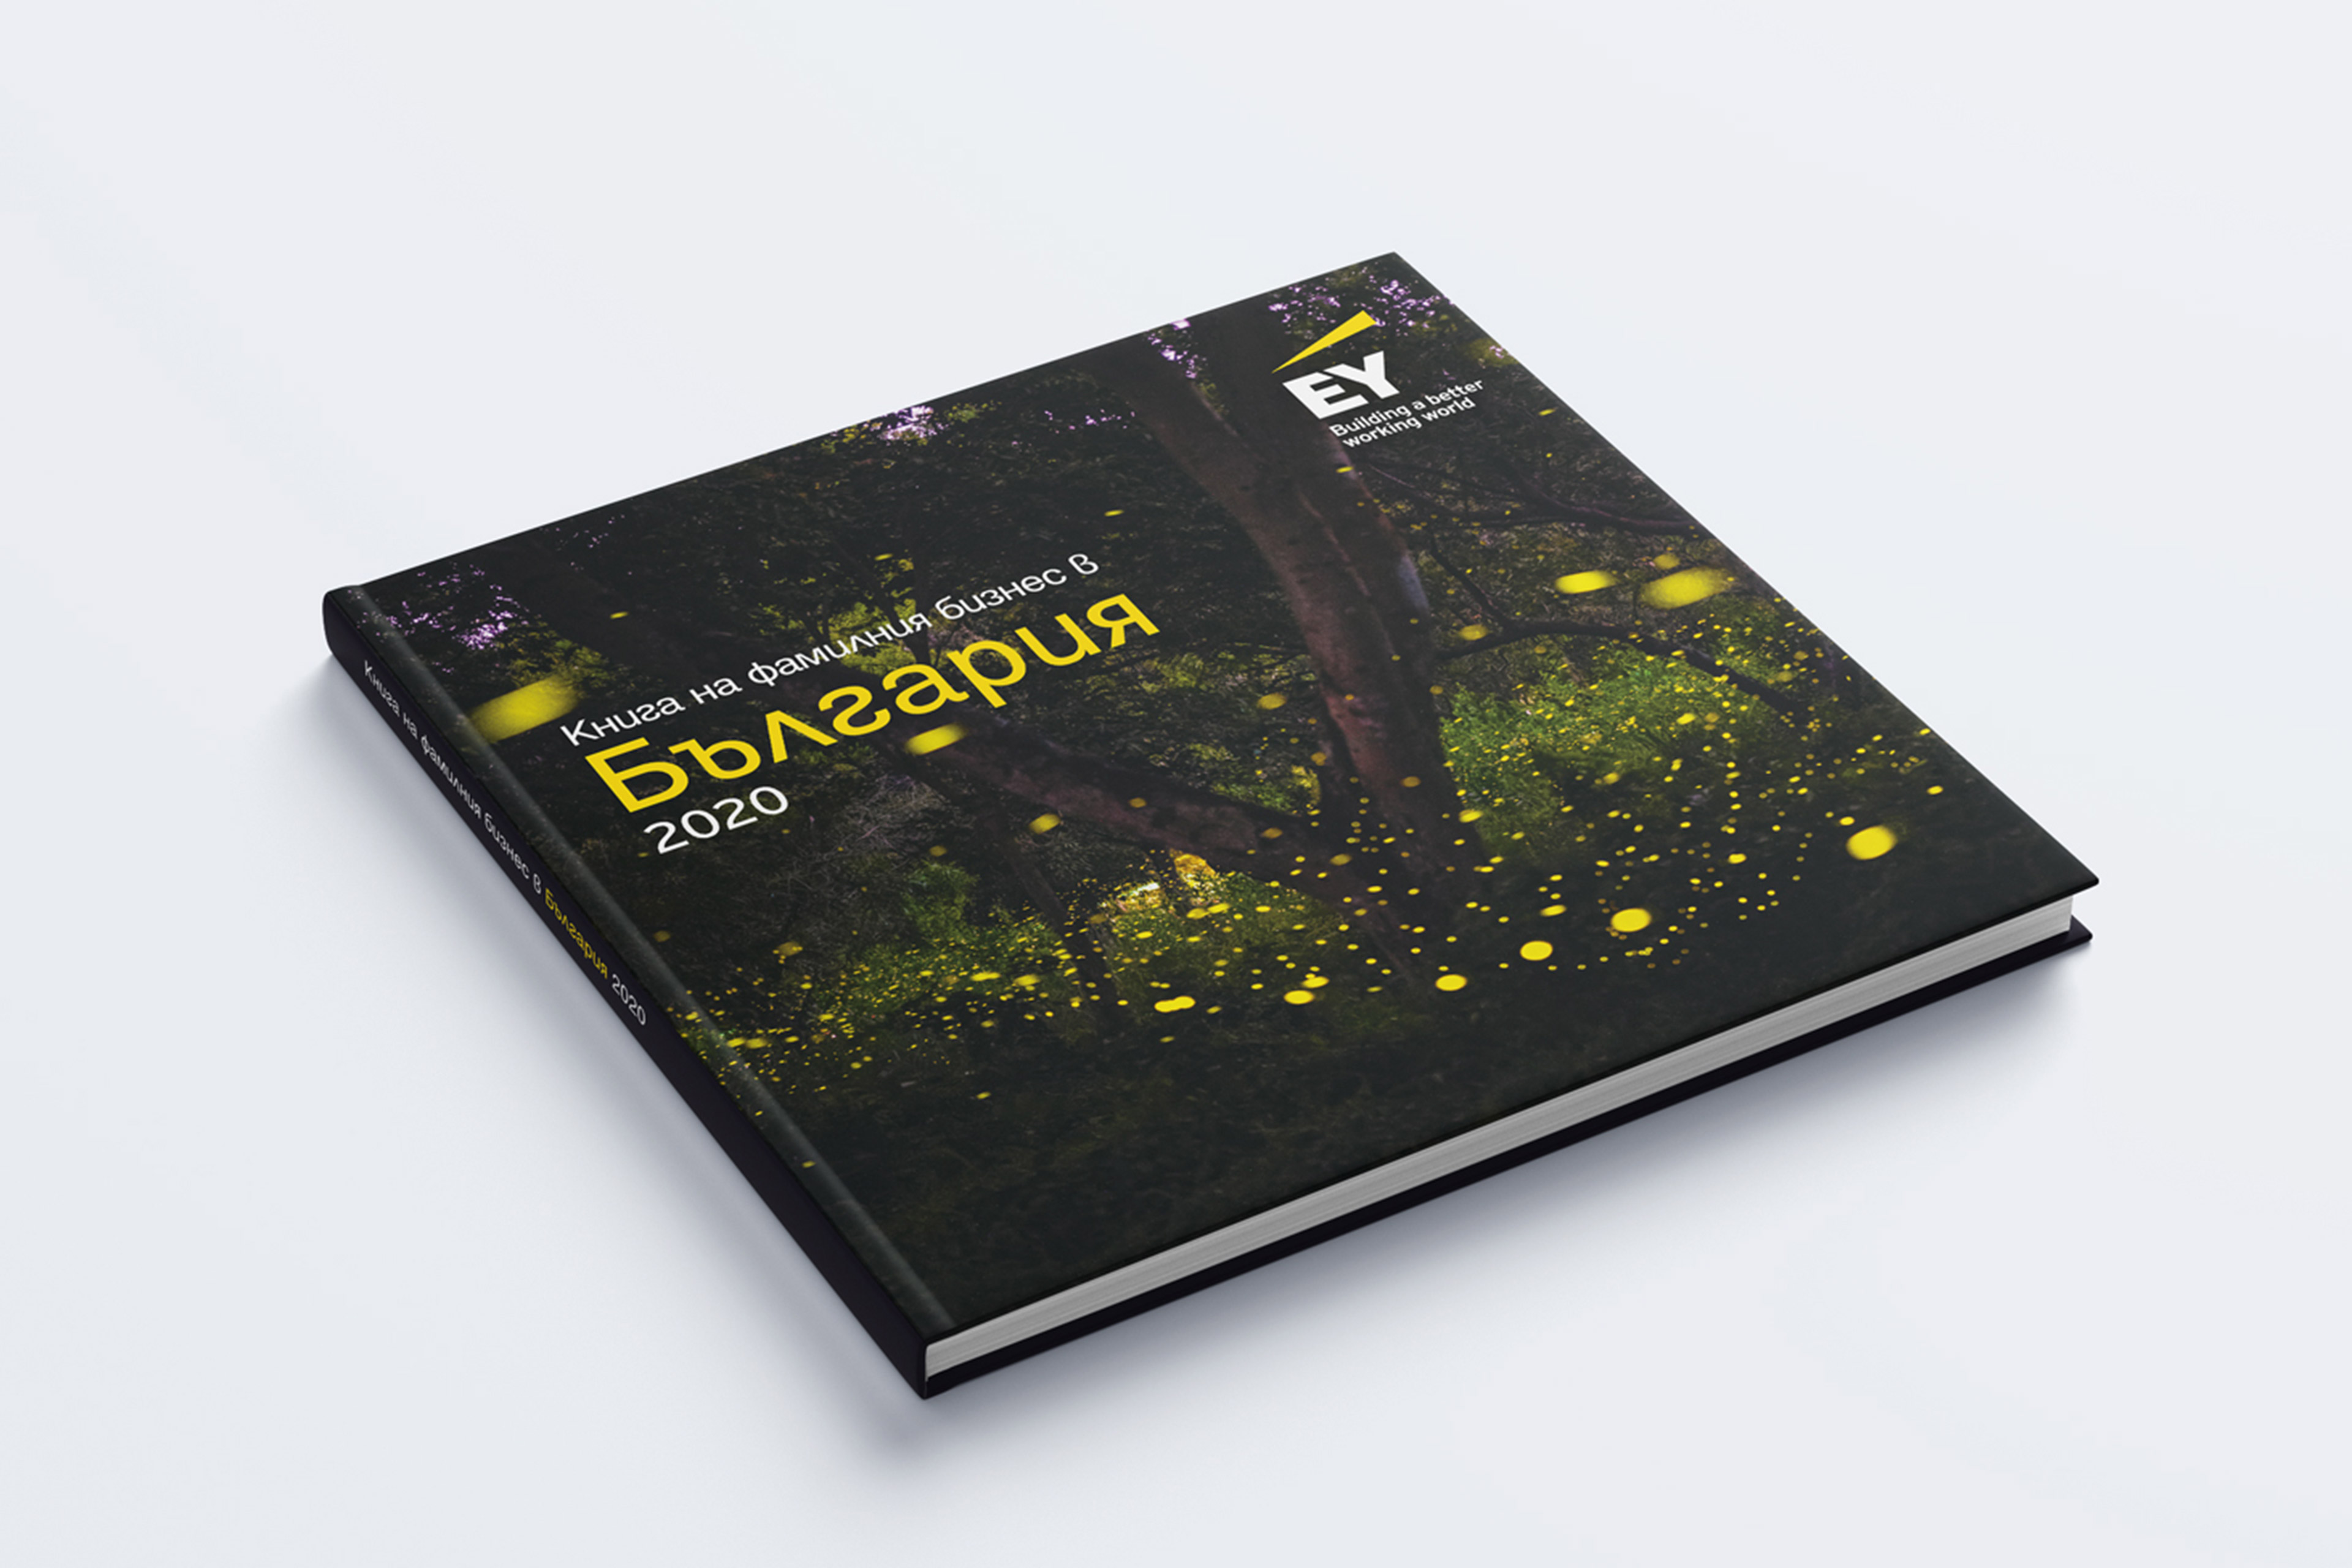 ey-bulgaria-has-published-the-second-family-business-book